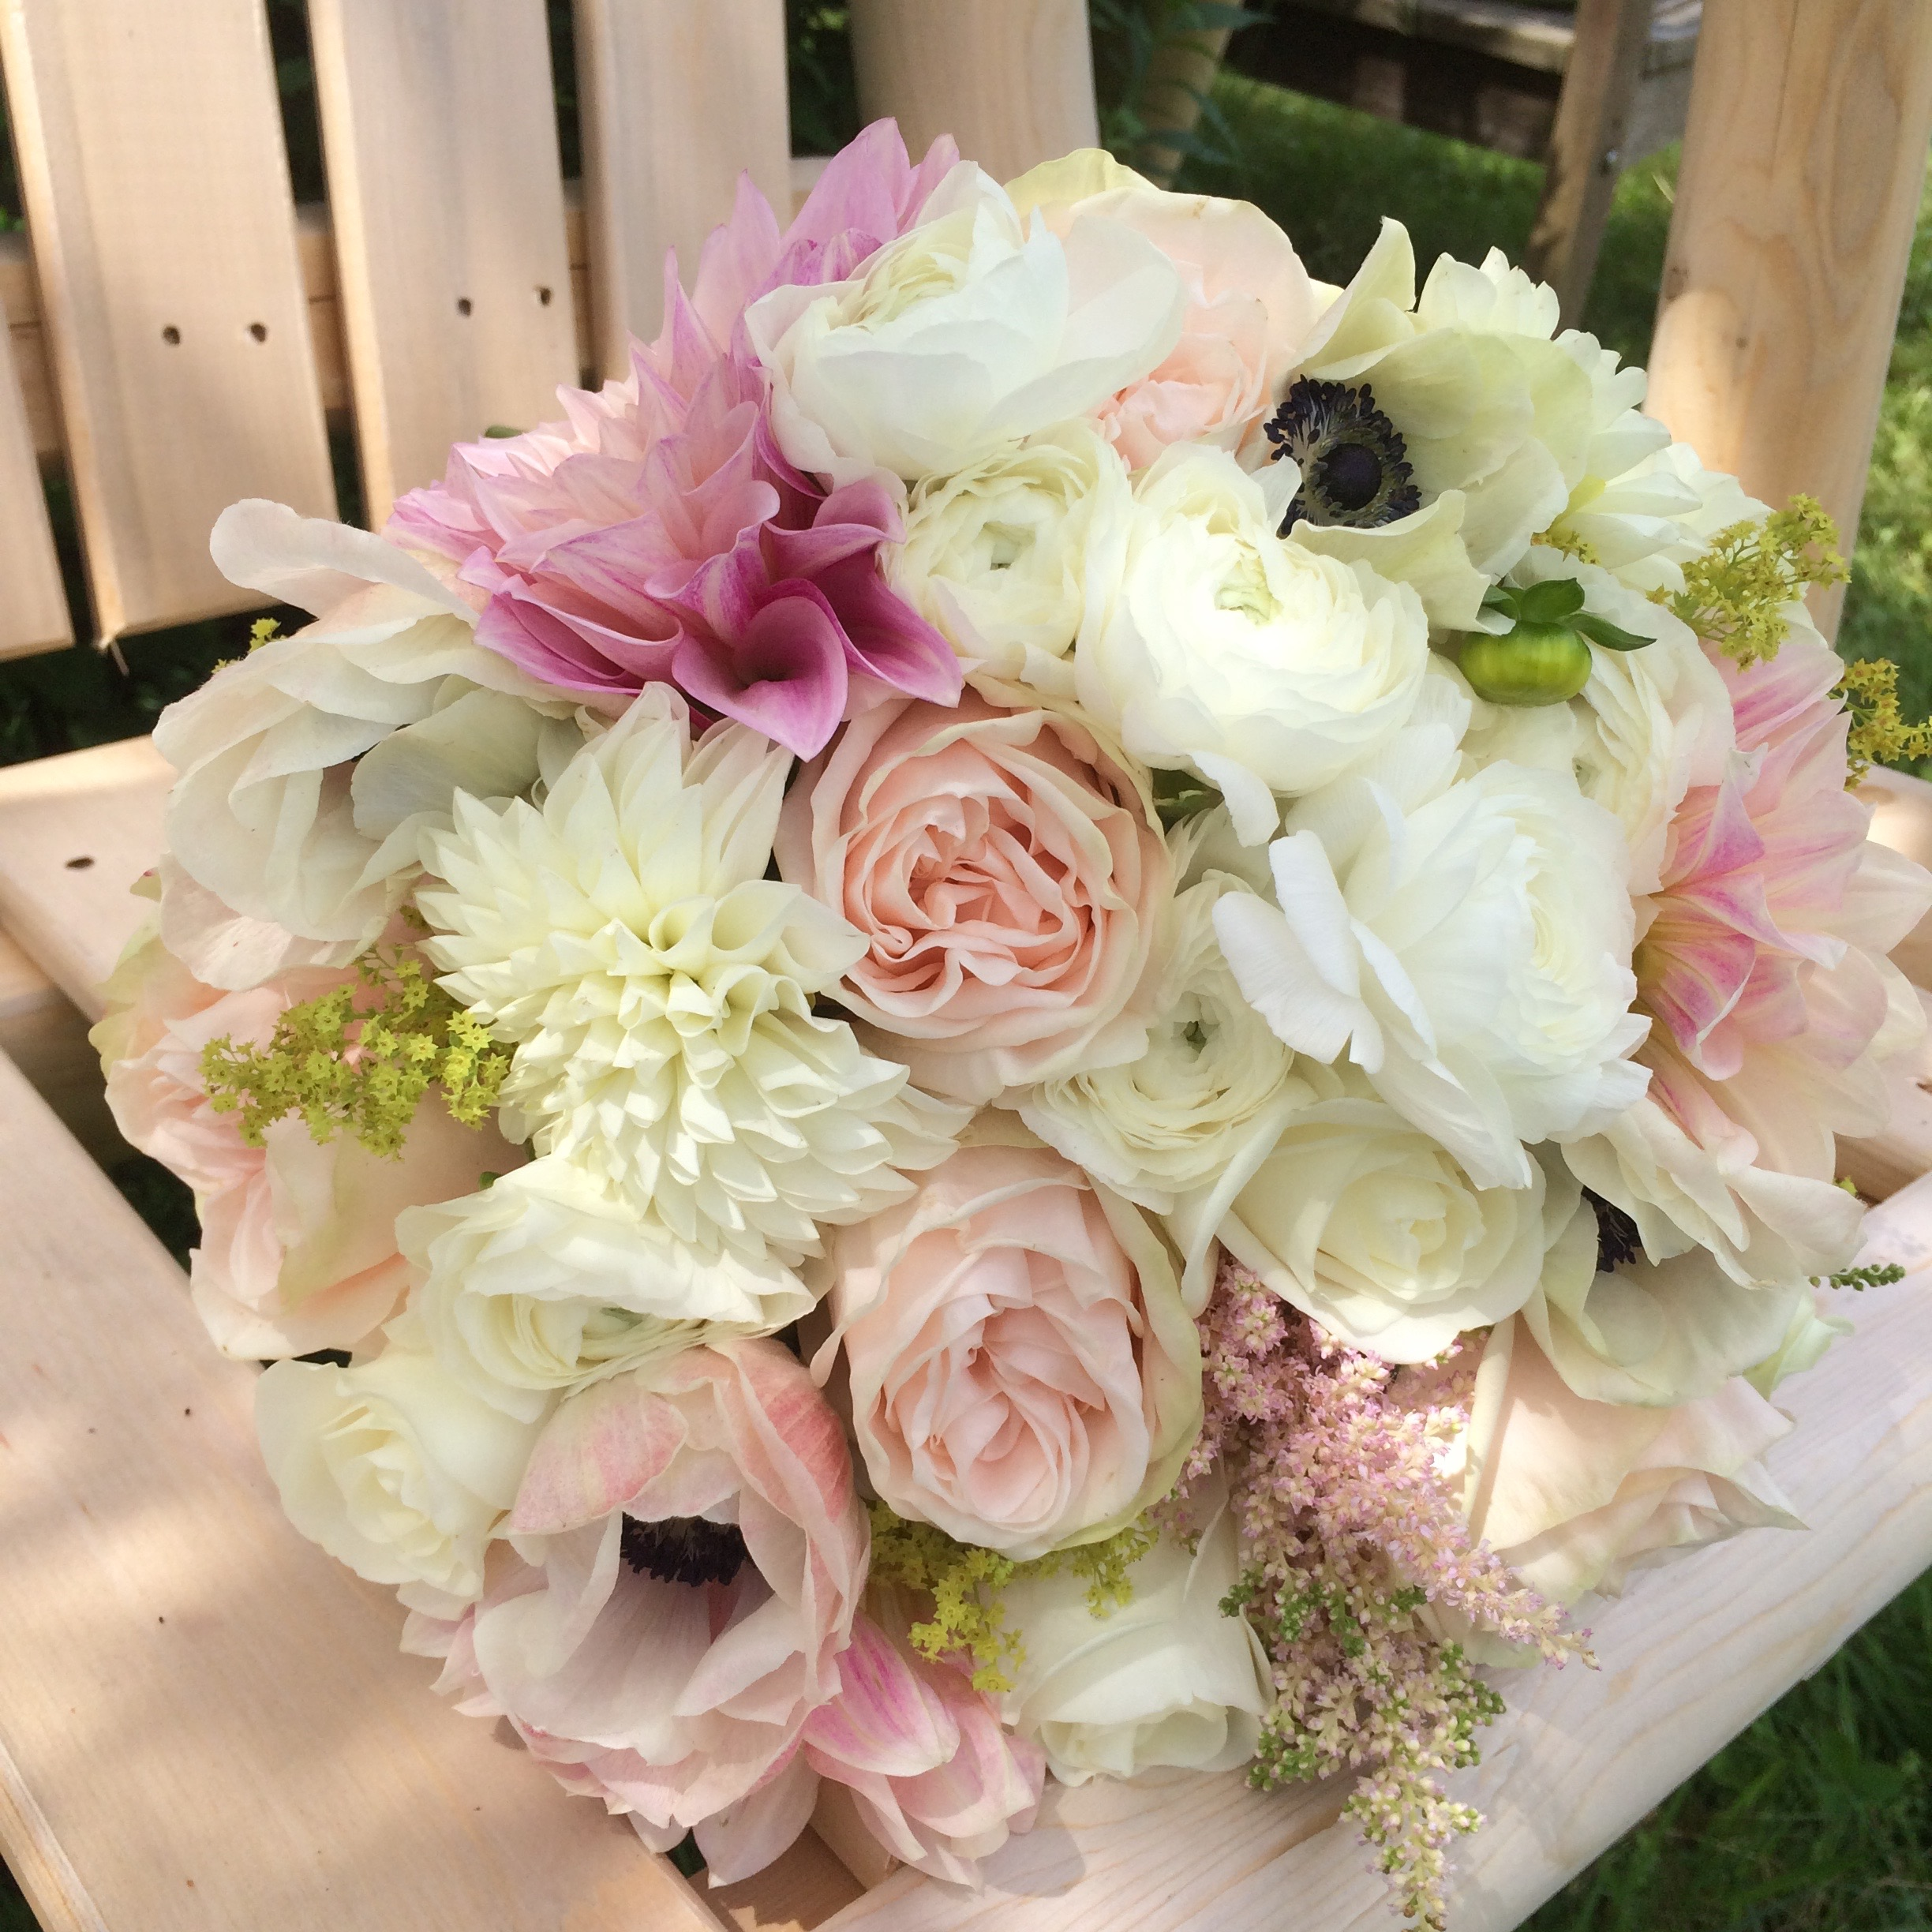 Beautiful blush pink and white flowers for vermont wedding wedding arbor at old lantern blush pink and white wedding flowers vermont wedding flowers floral artistry mightylinksfo